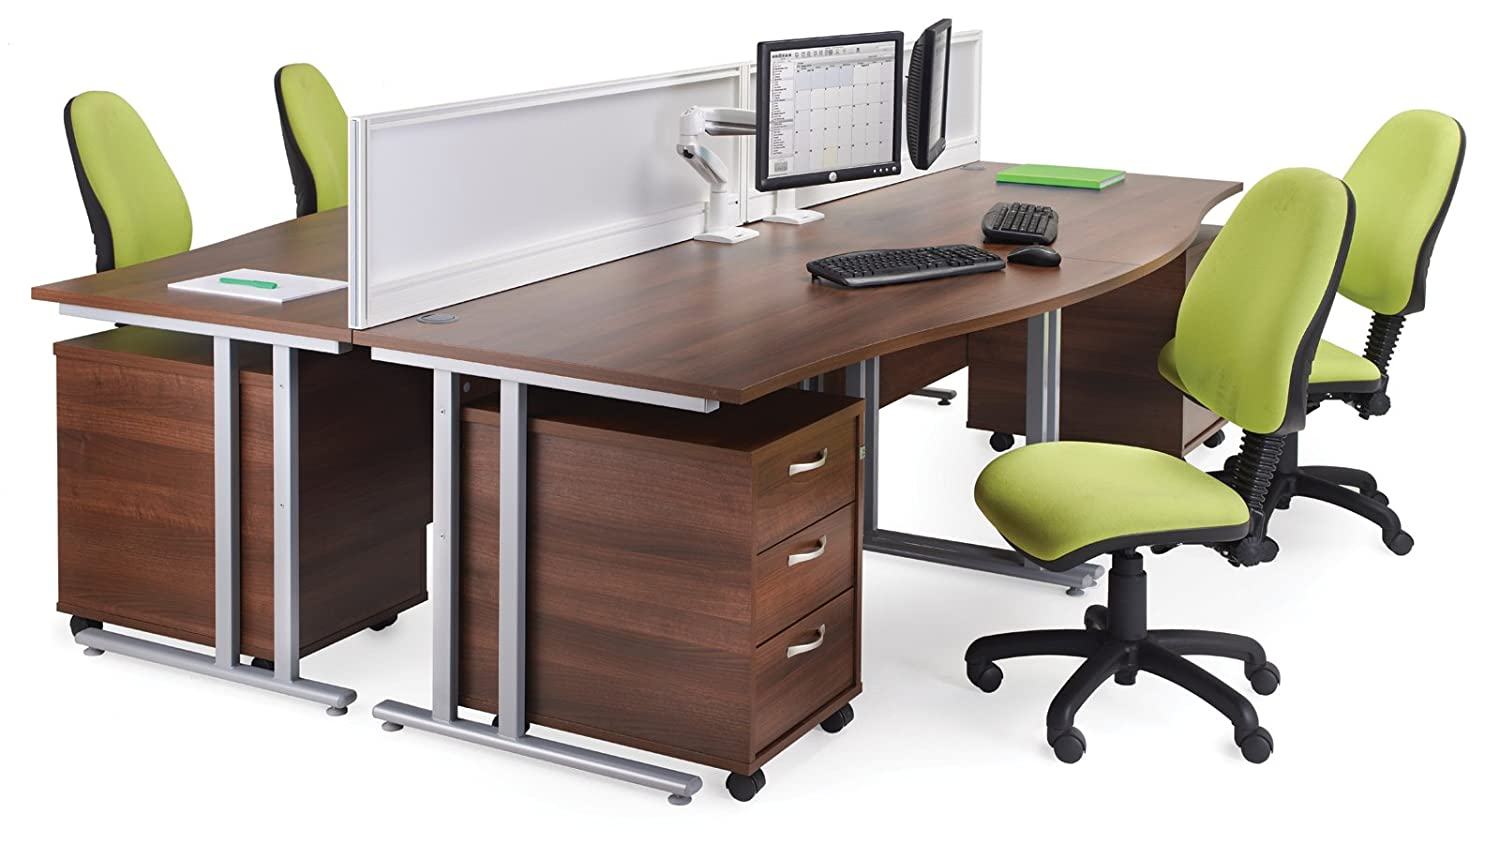 Office Elephant OE05-R3MB Three drawer mobile pedestal with three shallow drawers which are lockable in beech